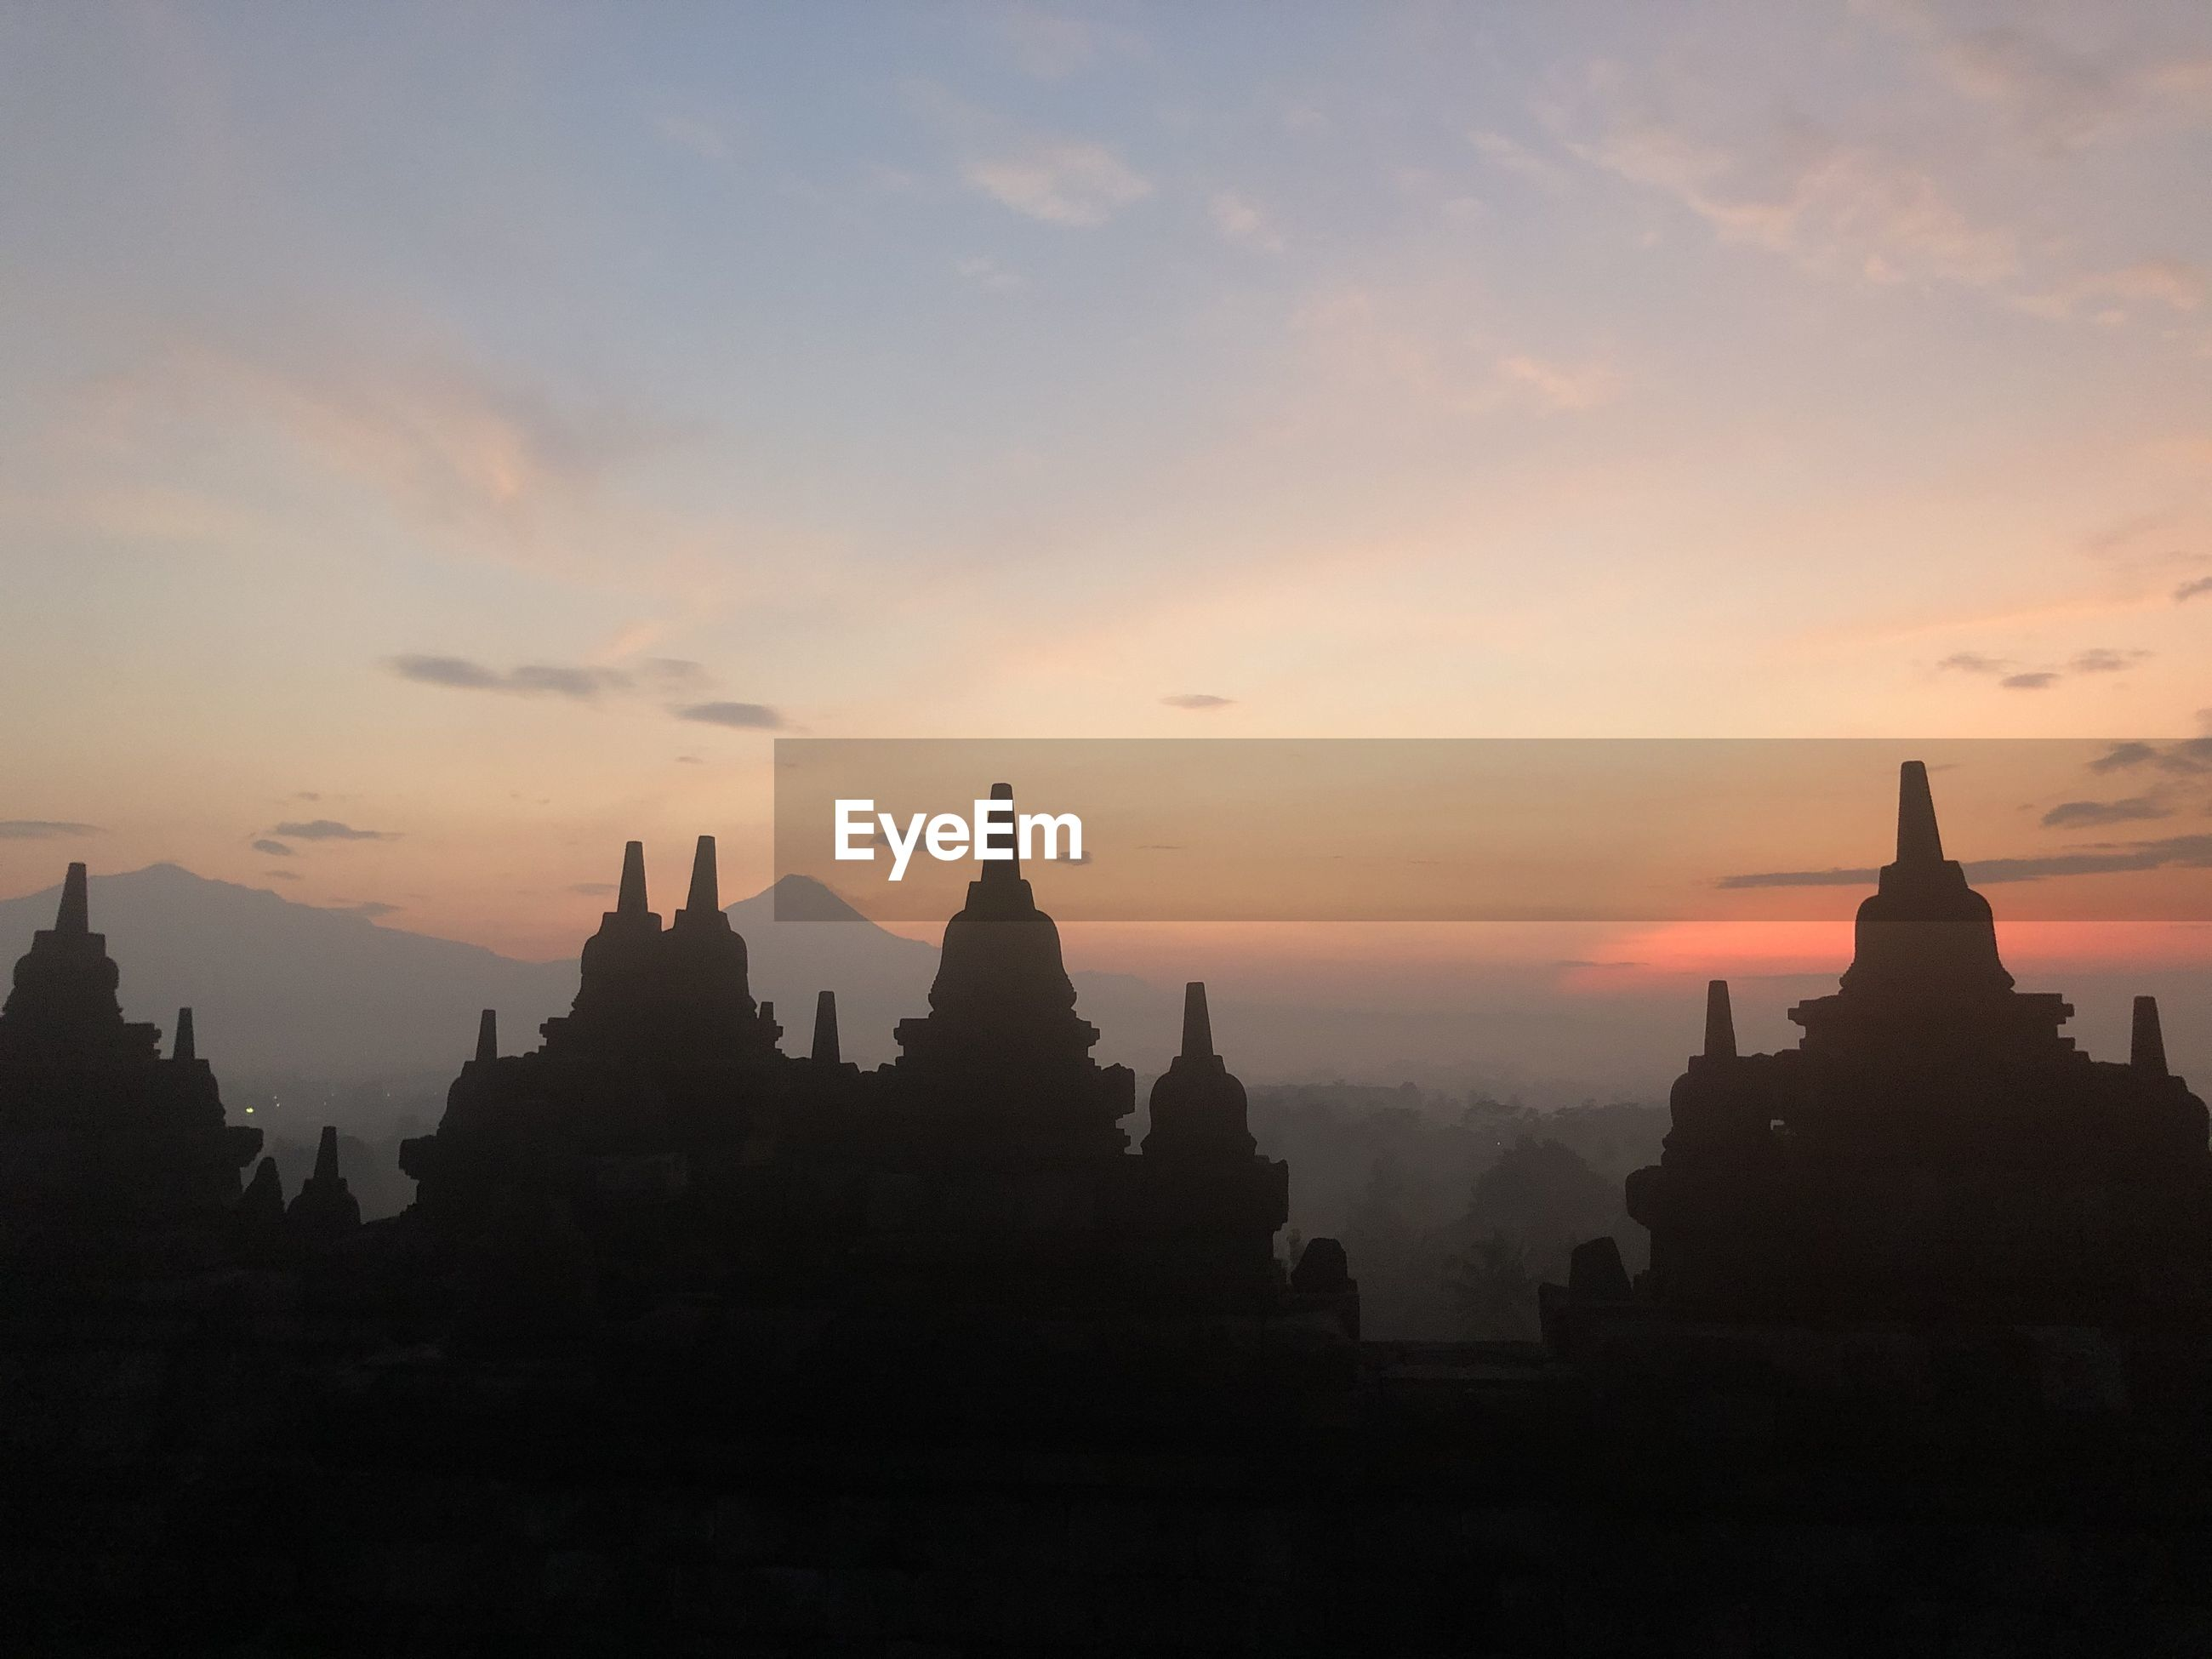 PANORAMIC VIEW OF A TEMPLE AGAINST SKY DURING SUNSET